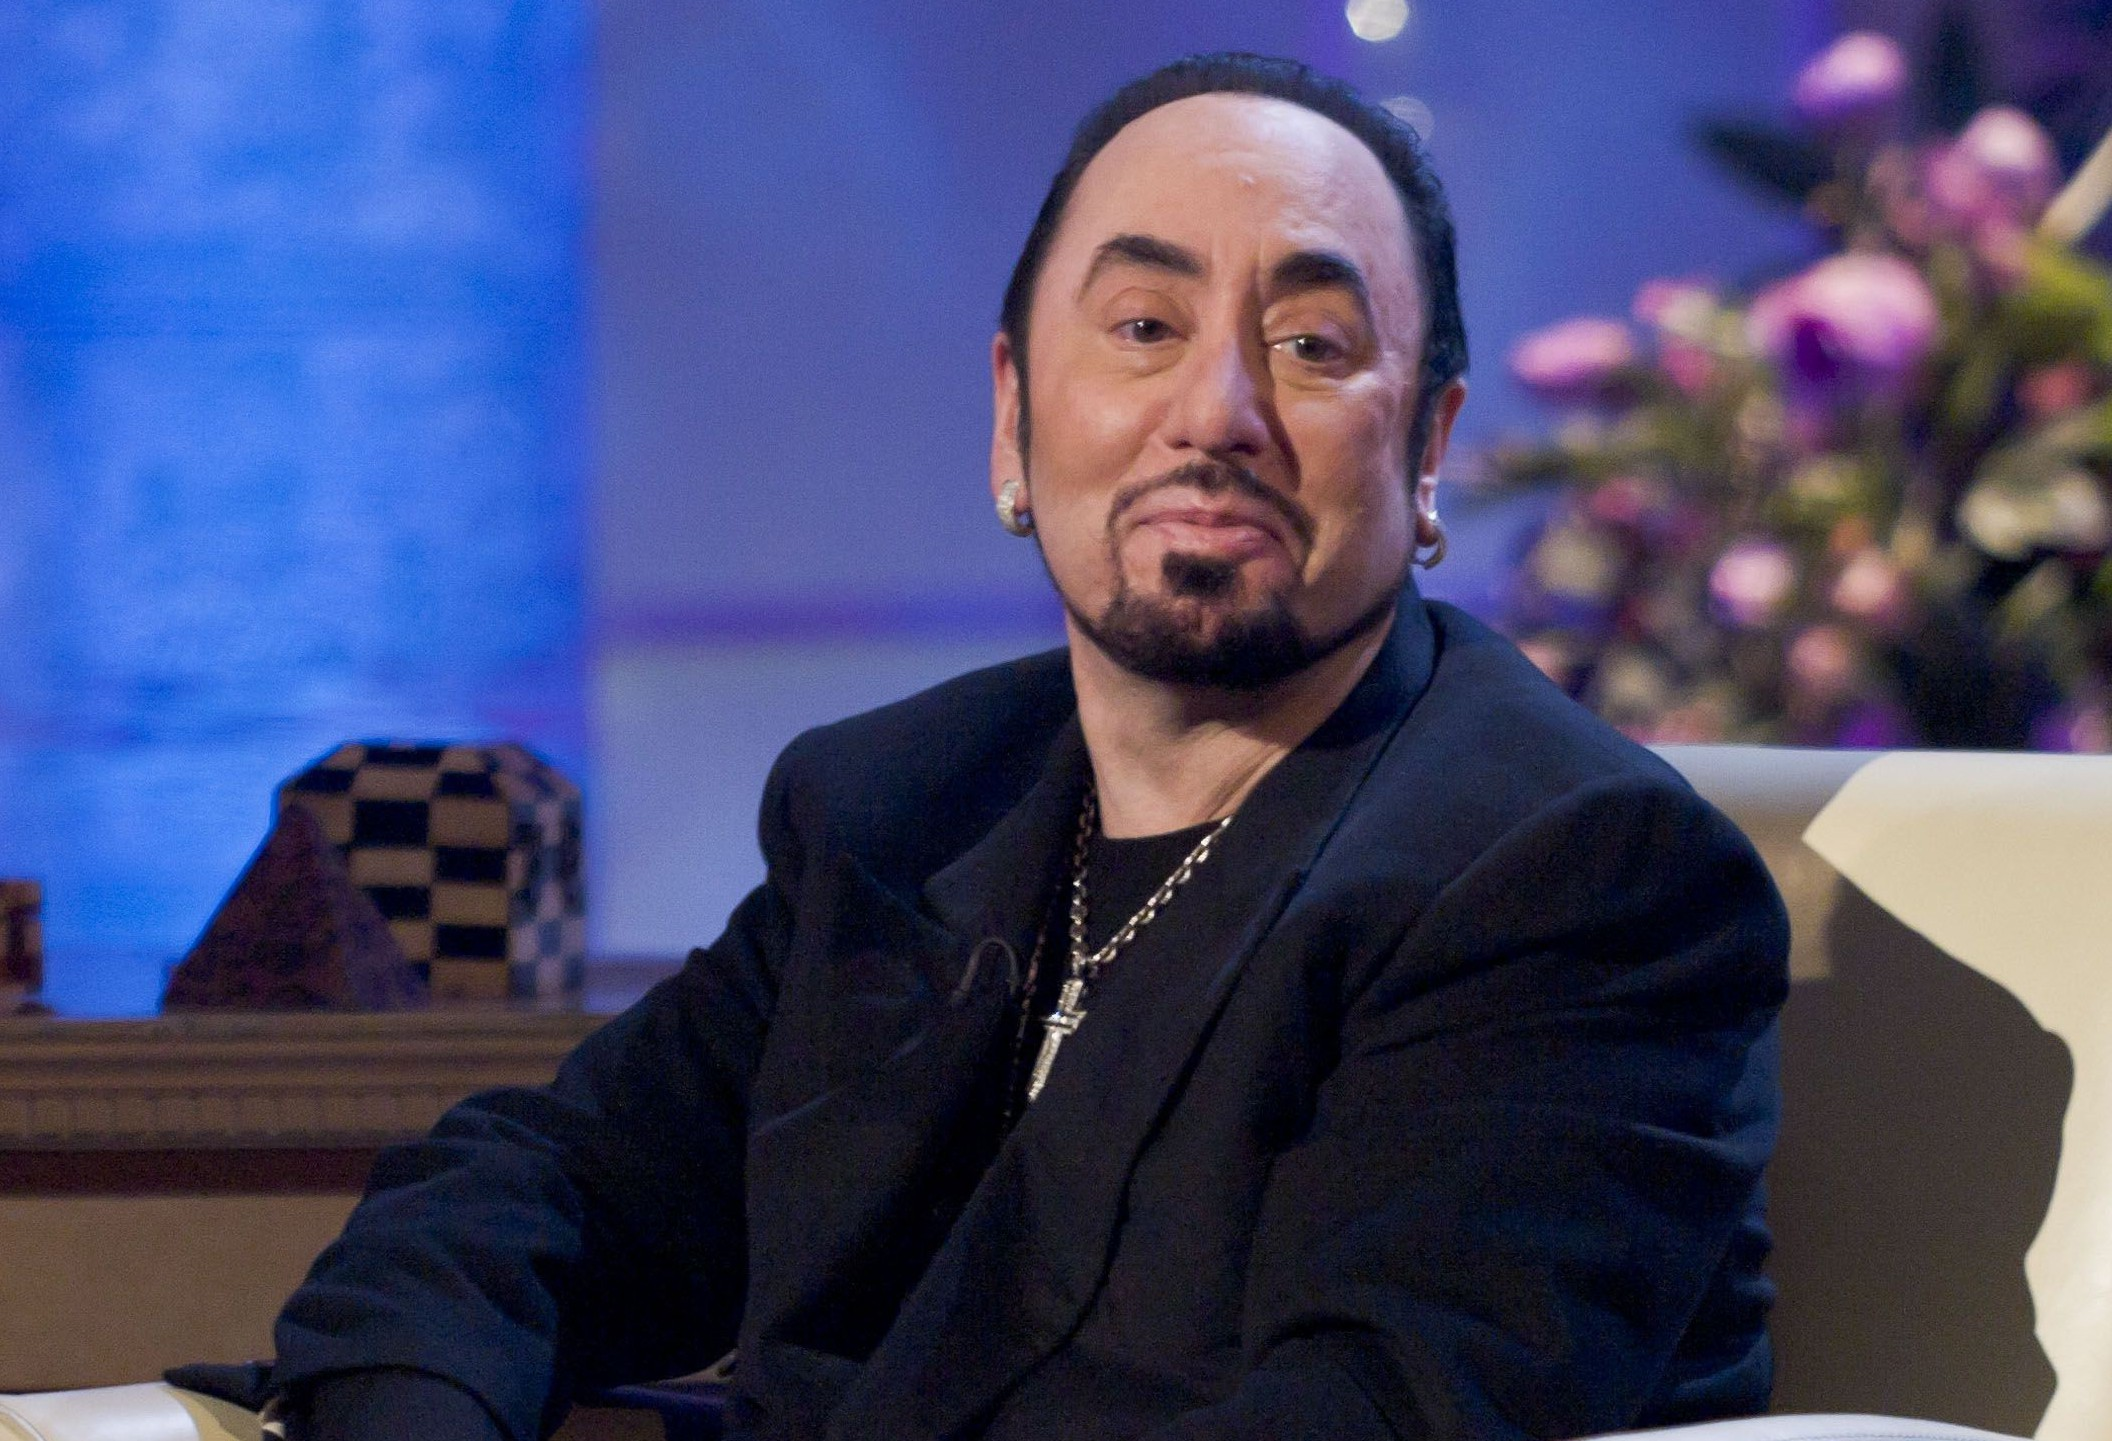 EDITORIAL USE ONLY / NO MERCHANDISING Mandatory Credit: Photo by Steve Meddle/REX/Shutterstock (1483023z) David Gest 'The Alan Titchmarsh Show' TV Programme, London, Britain. - 31 Oct 2011 Pre recorded